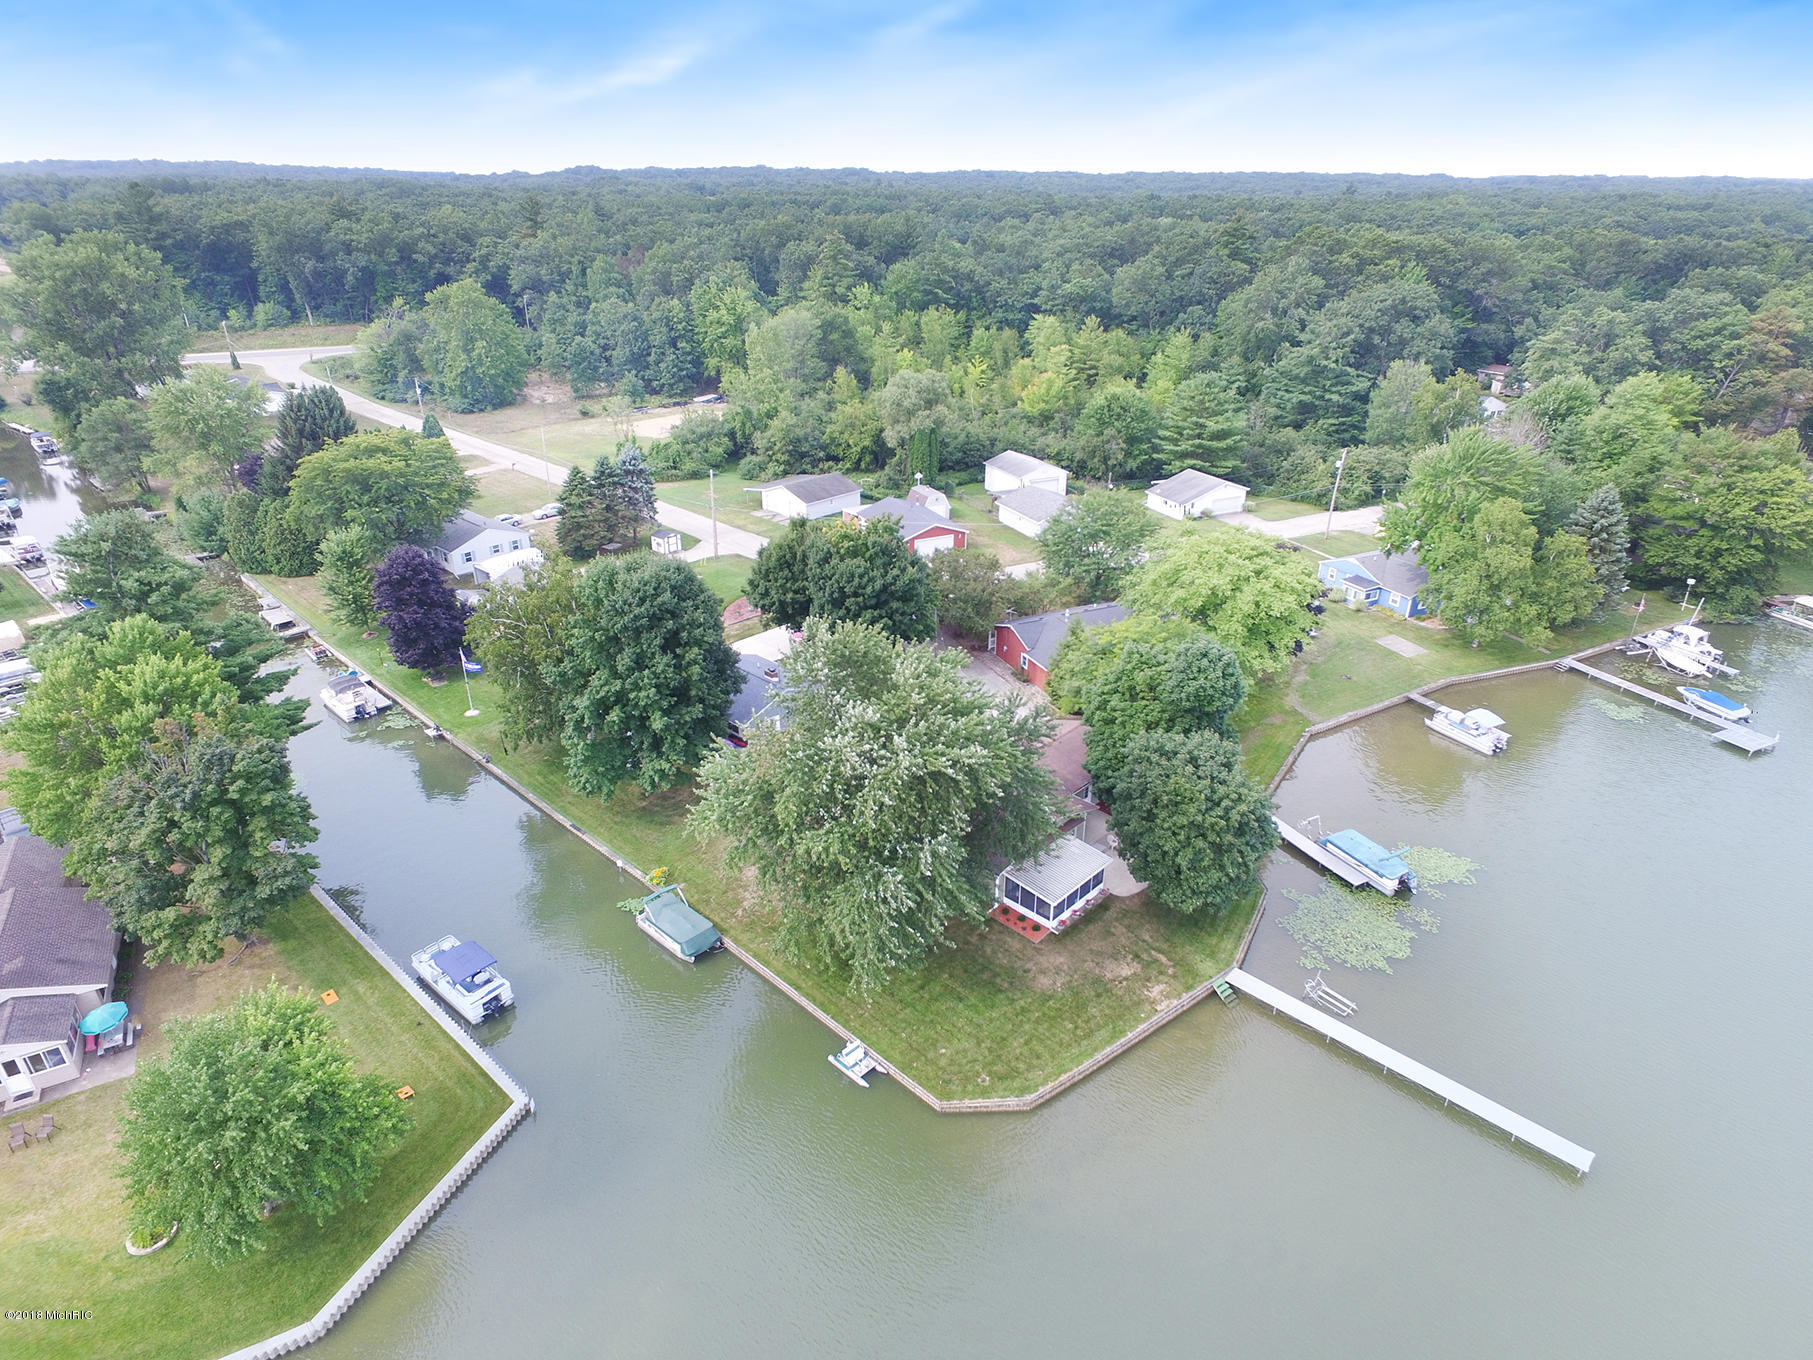 Aerial of home & dock